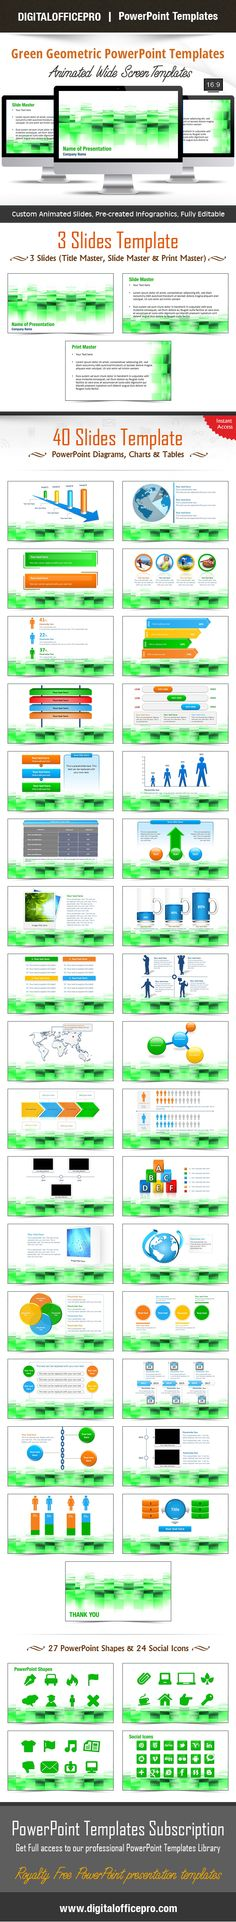 Impress and engage your audience with rice plant powerpoint impress and engage your audience with green geometric powerpoint template and green geometric powerpoint backgrounds from toneelgroepblik Choice Image